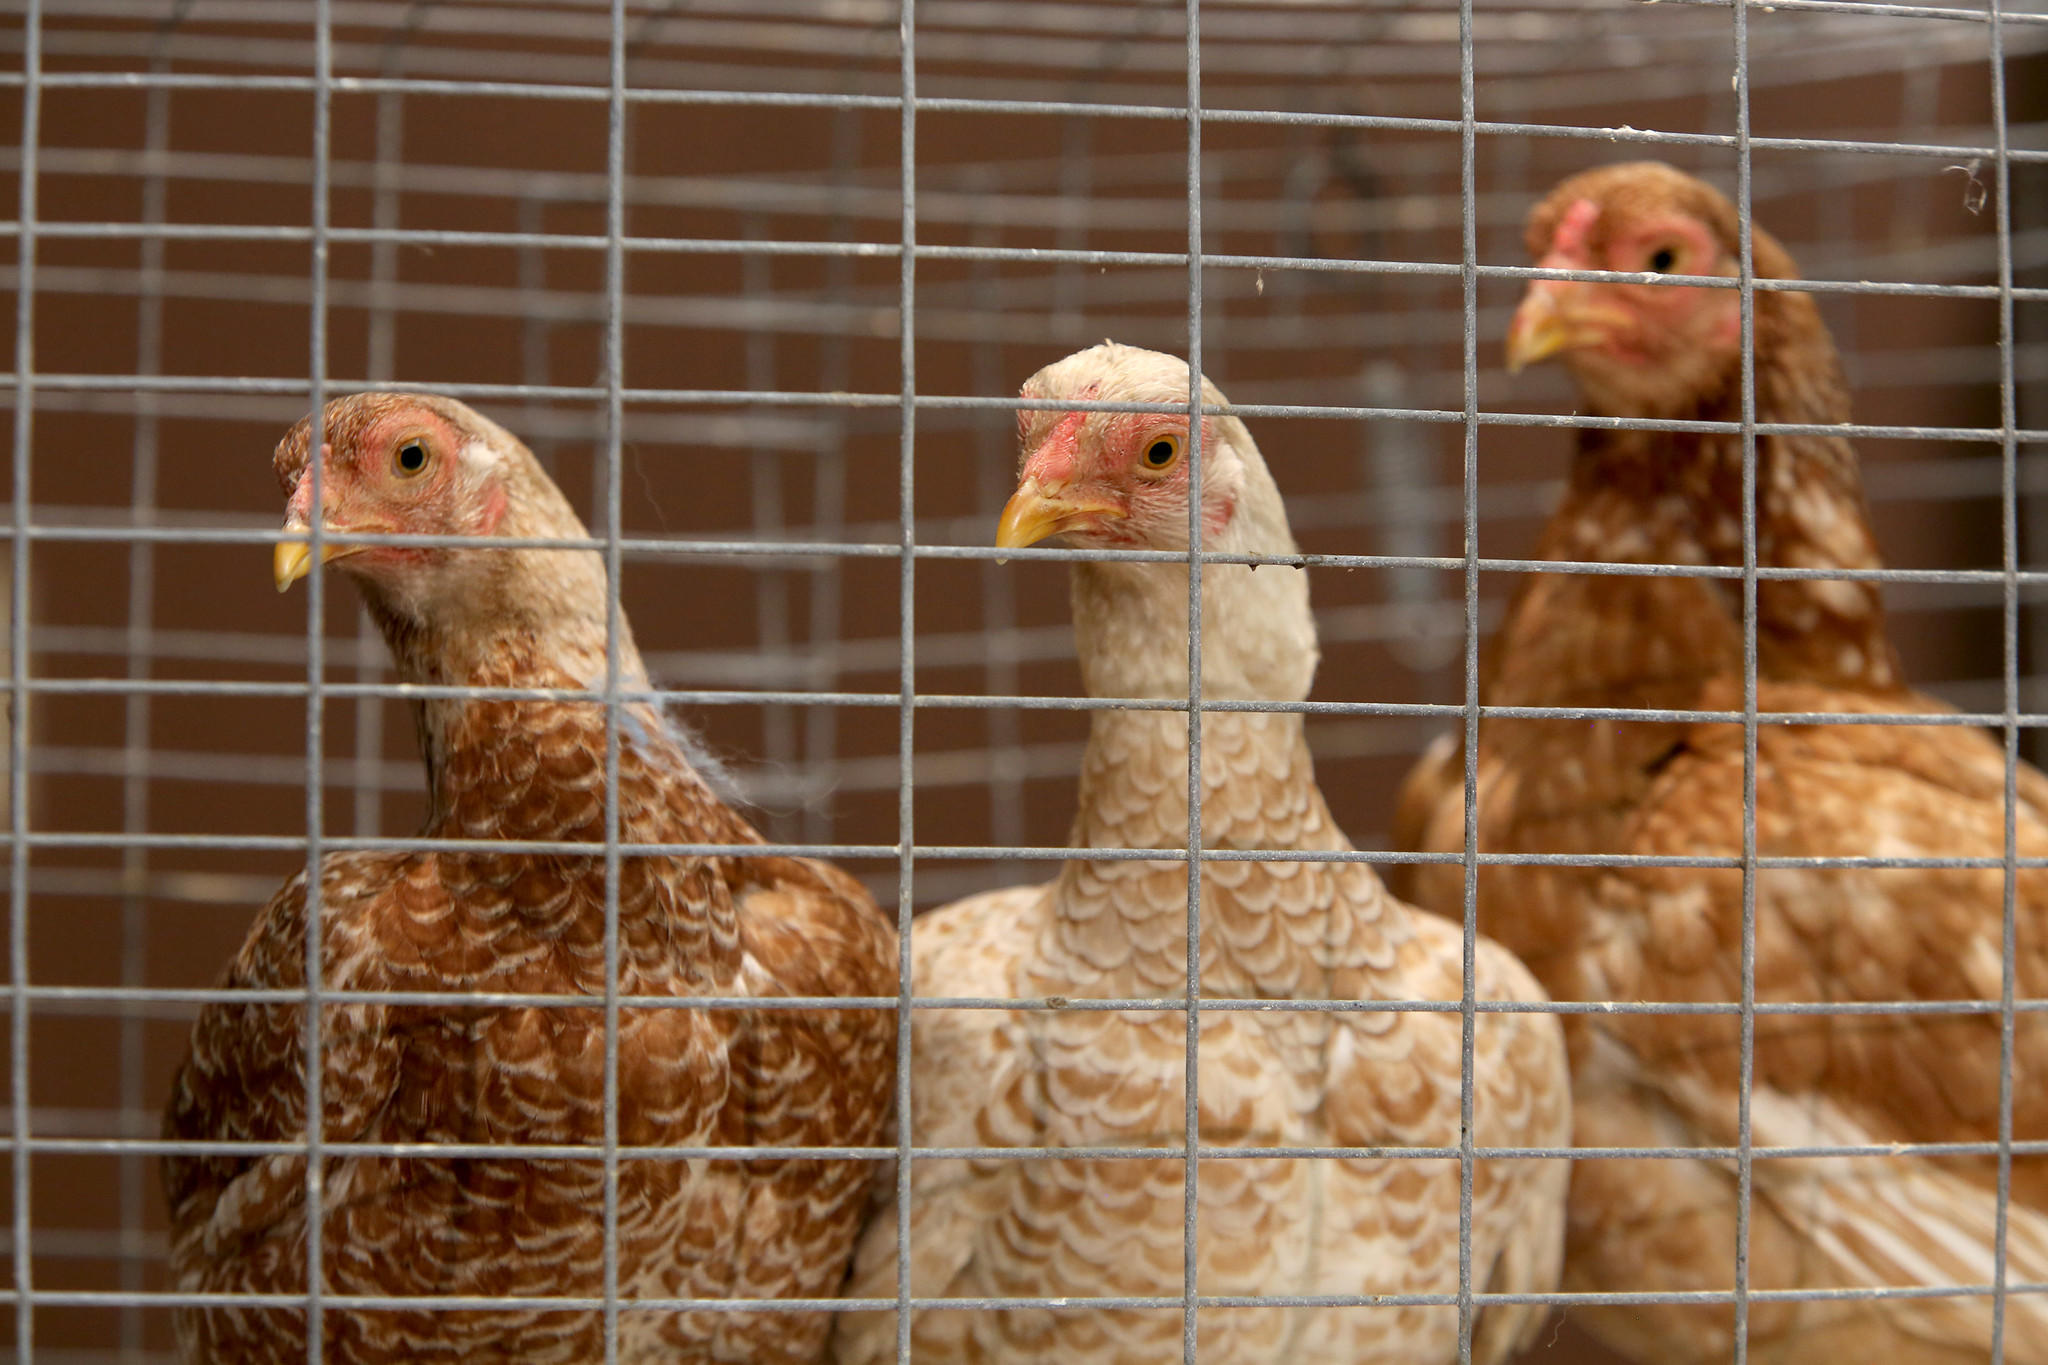 Chickens are displayed during a press conference held by Republican gubernatorial candidate Bruce Rauner to represent state spending under Illinois Gov. Quinn introduce rare prairie chickens to the state.